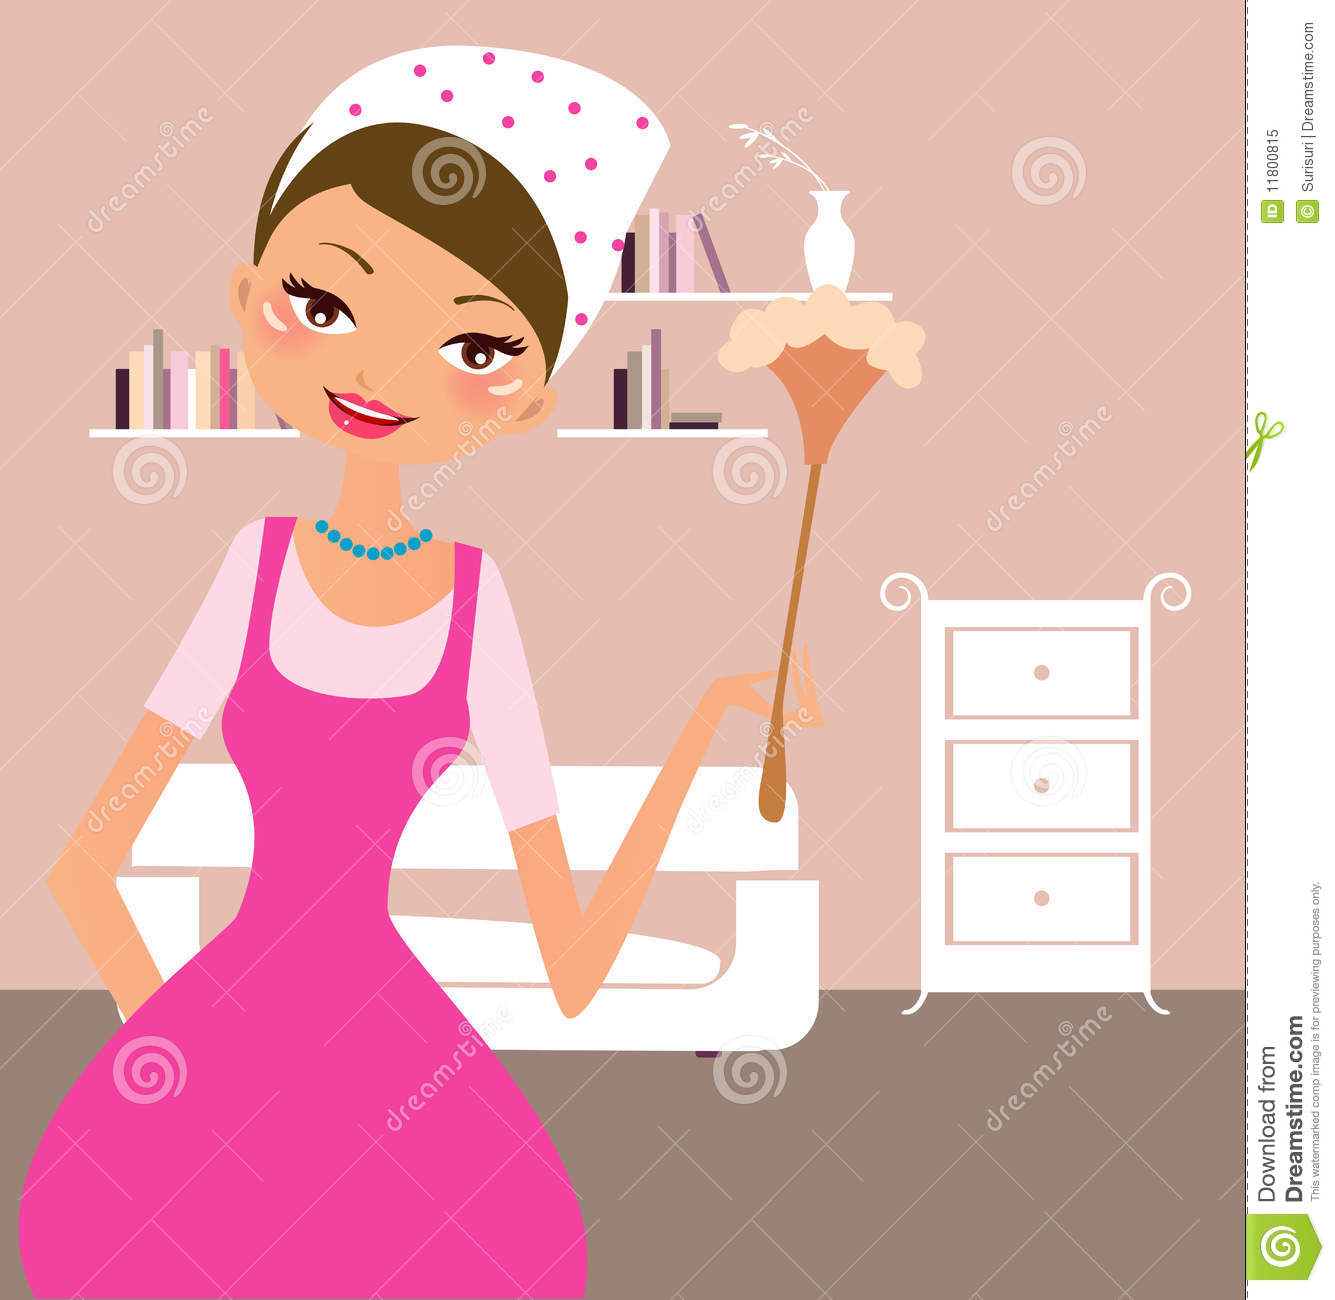 Housekeeping Royalty Free Stock Photo Image 11800815